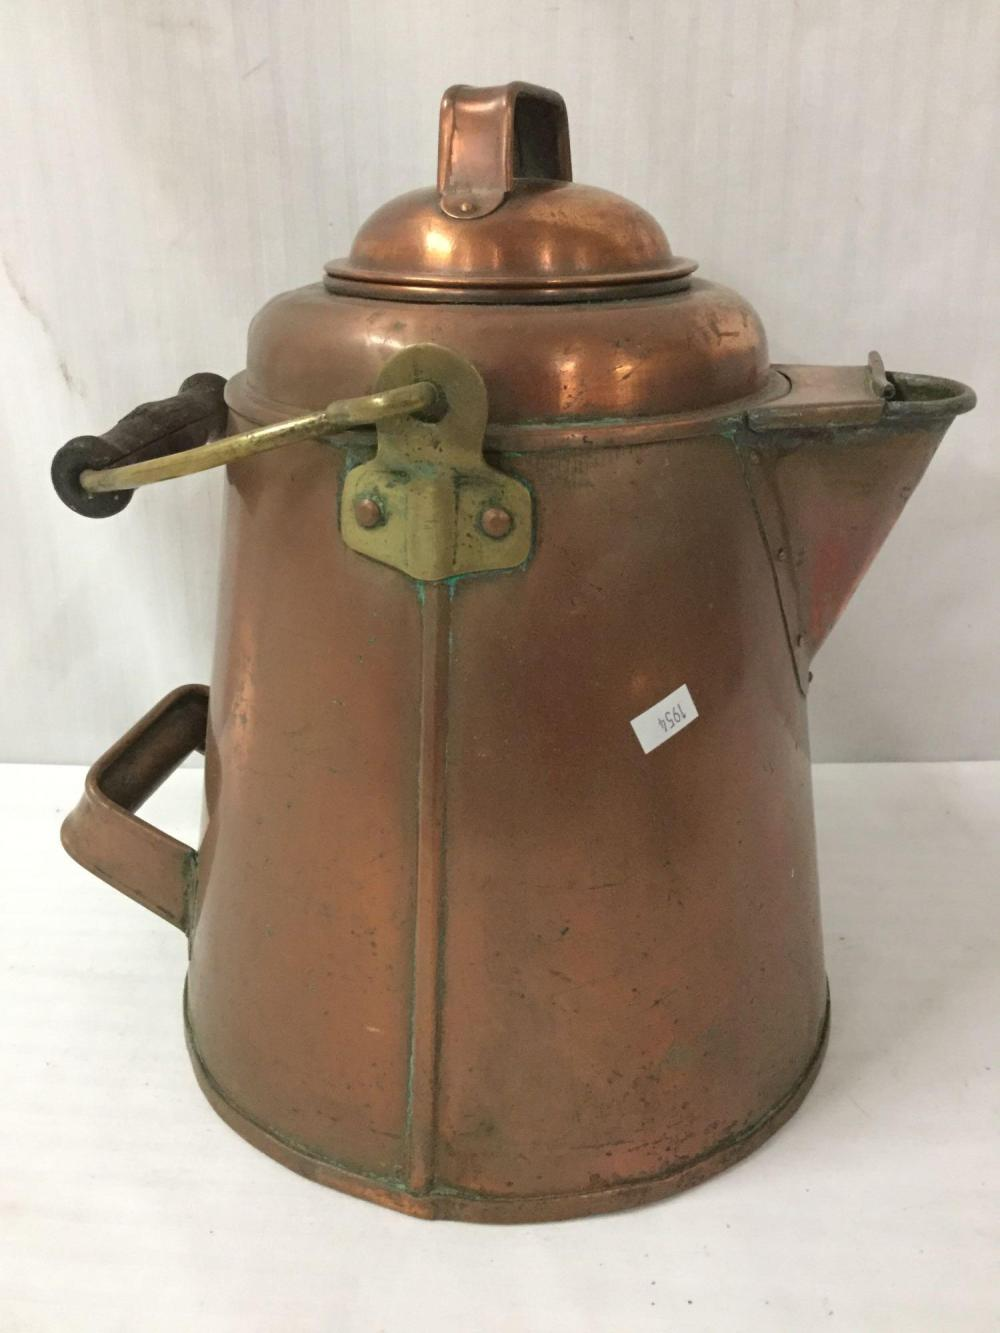 Lot 319: Lot of 4 antique copper kettles, one marked Made in Portugal - various sizes